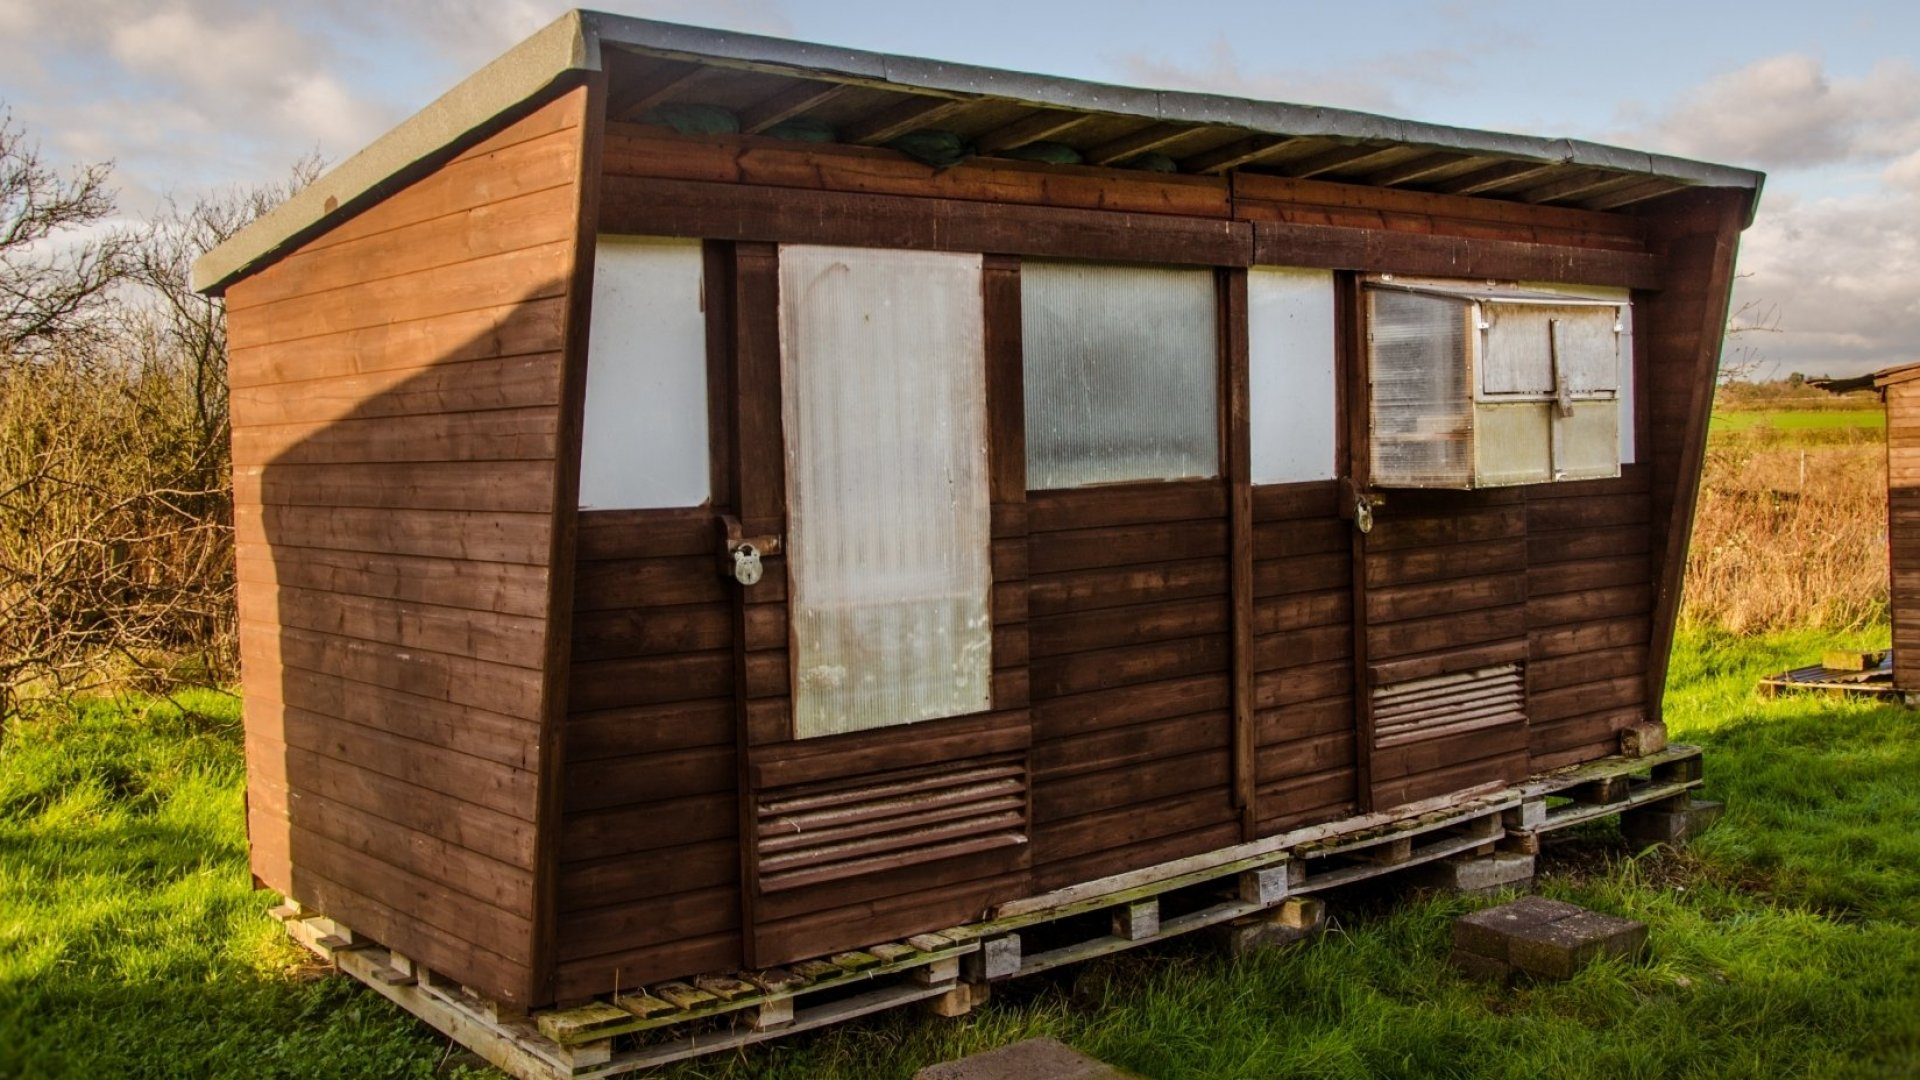 Tiny Home Innovations Could Help End the Housing Crisis